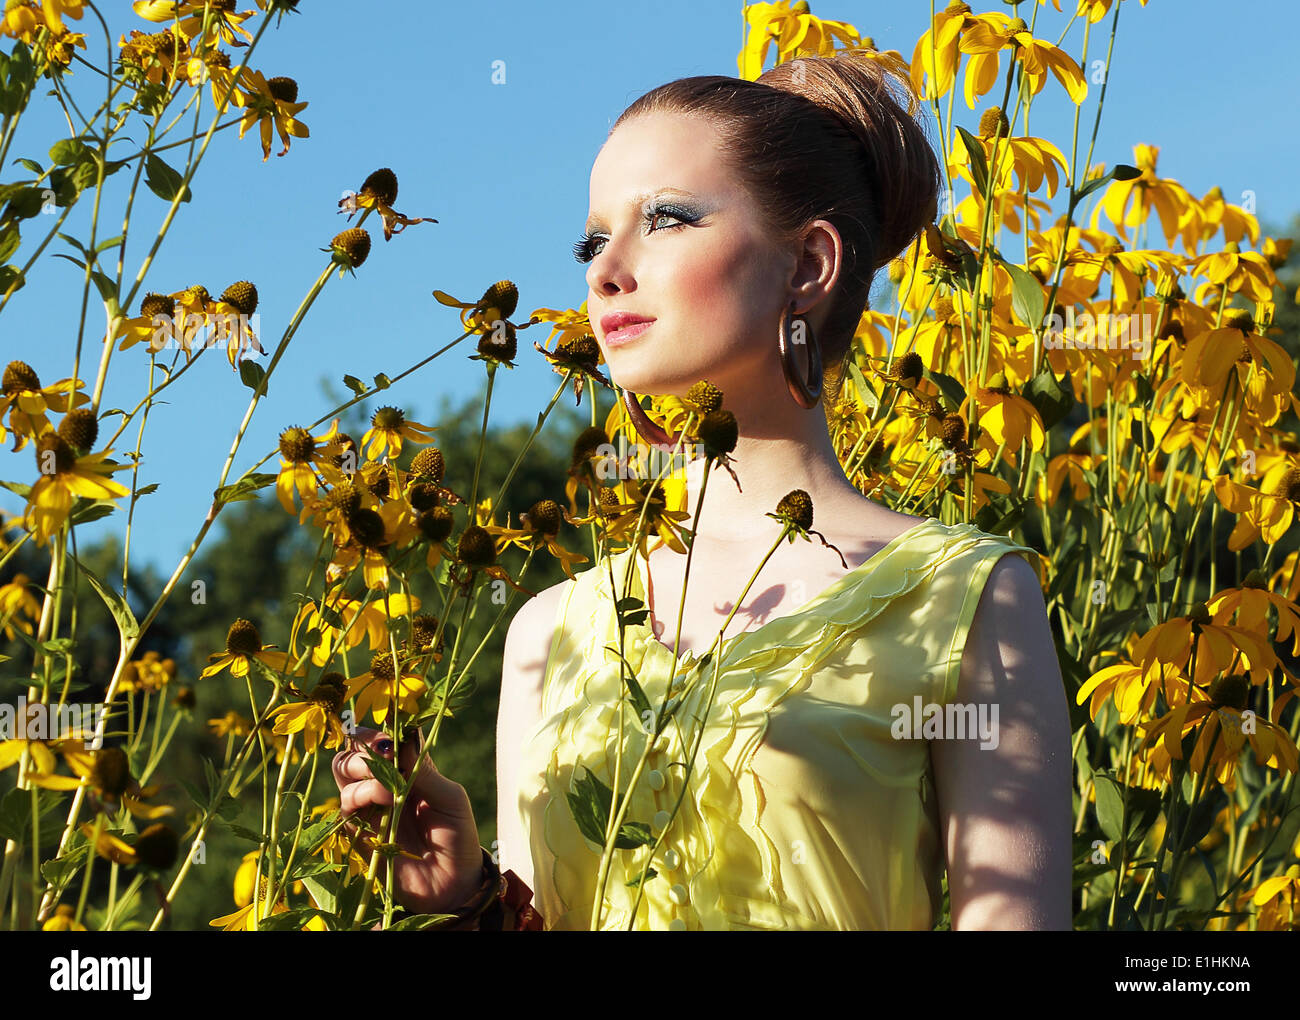 Summertime. Young Female in Meadow among Blooming Yellow Flowers - Stock Image